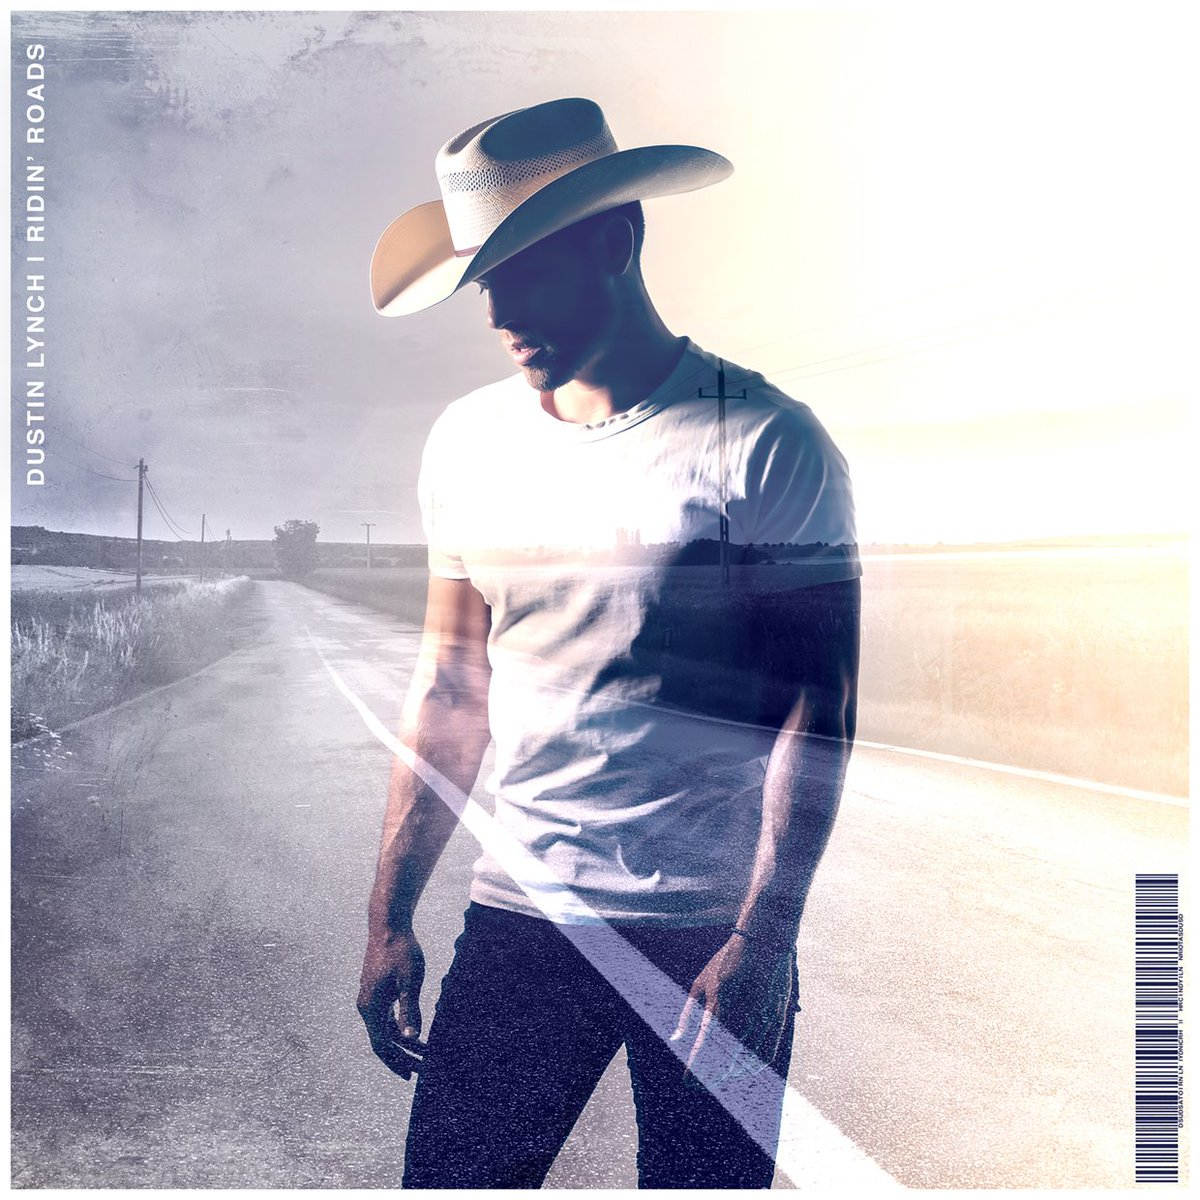 #OpryMember @dustinlynch just dropped #RidinRoads with  new songs, and they are !  Get &#39;em here:  http:// dustinlynch.lnk.to/ridinroads  &nbsp;  <br>http://pic.twitter.com/YRScdETIpi